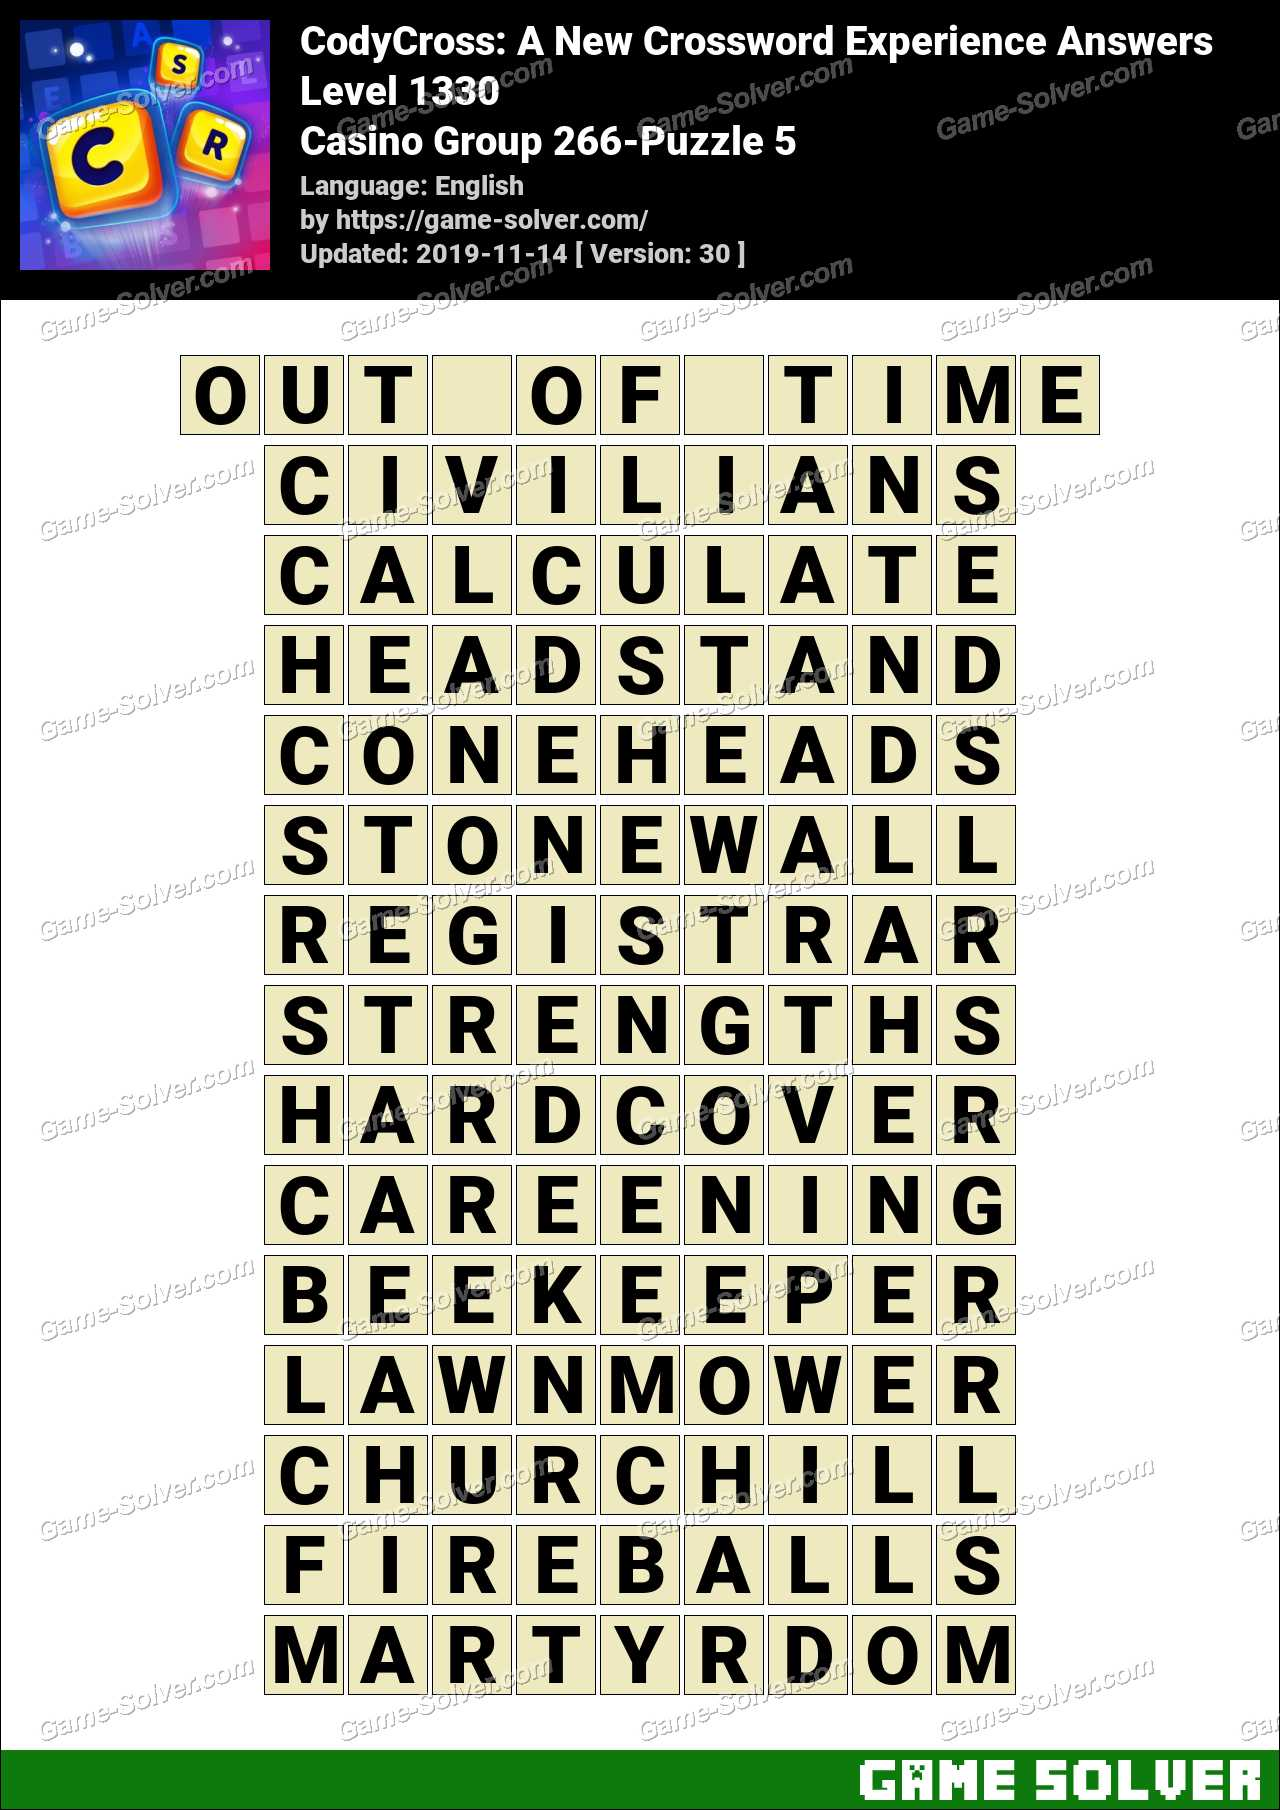 CodyCross Casino Group 266-Puzzle 5 Answers